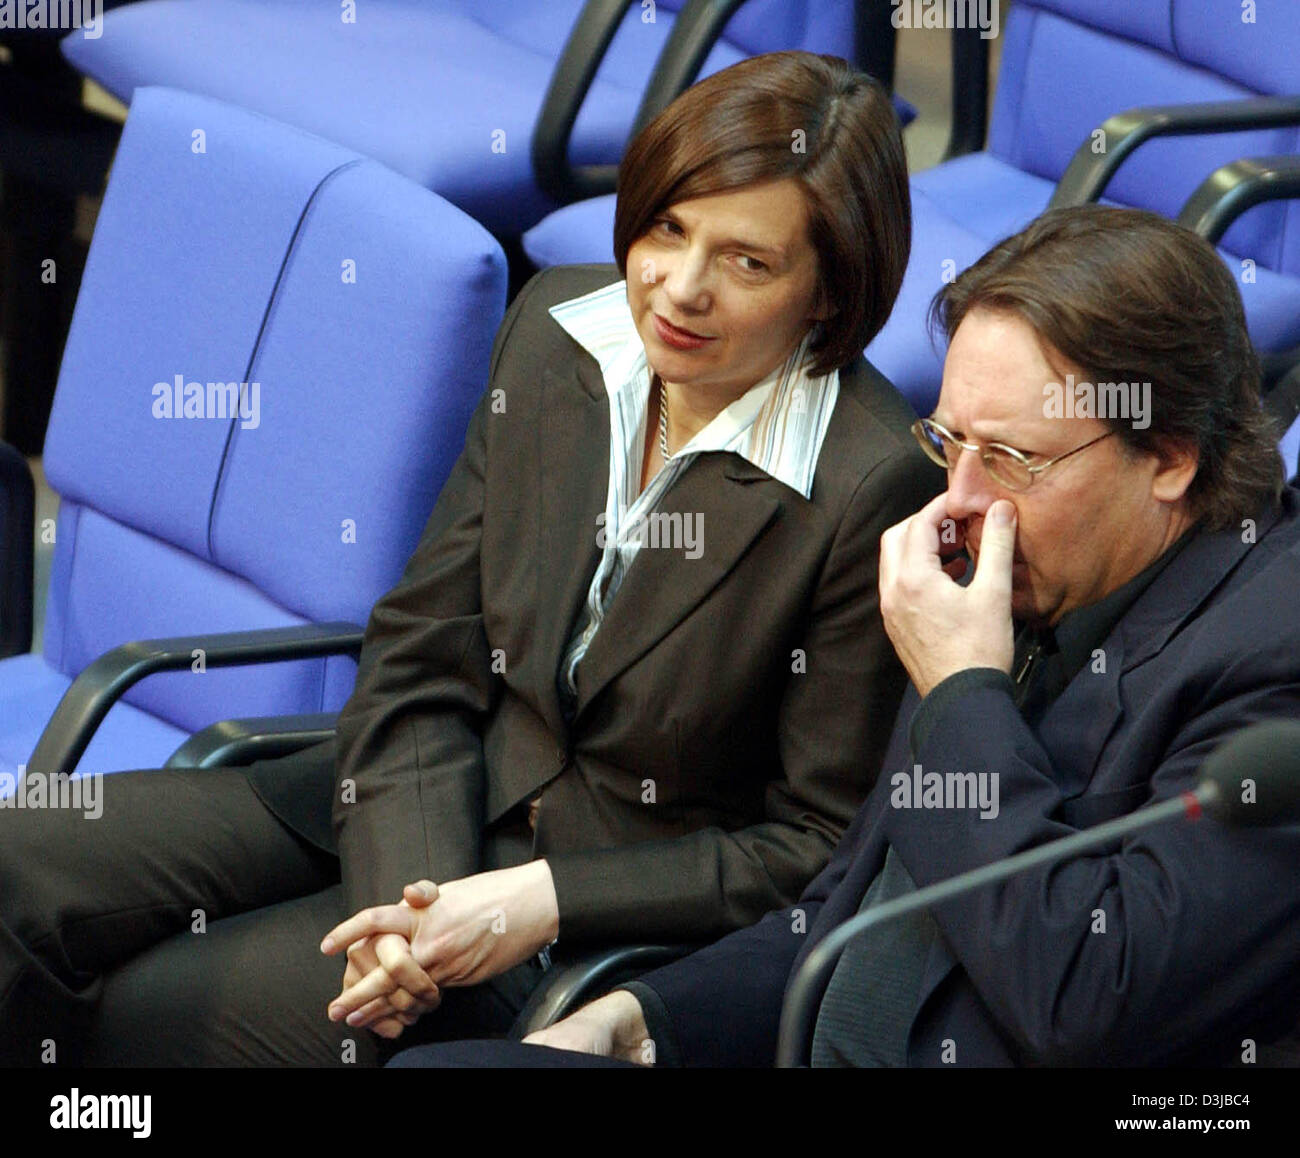 (dpa) - Ludger Volmer (R), former Minister of State at the German Foreign Office, chats with Katrin Goering-Eckardt leader of the Green Party faction in the Bundestag, German parliament in Berlin, Friday, 22 April 2005. Volmer testified last Thursdsay, 21 April 2005, to the inquiry commission investigating the scandal concerning the misuse of travel visas to Germany. Stock Photo